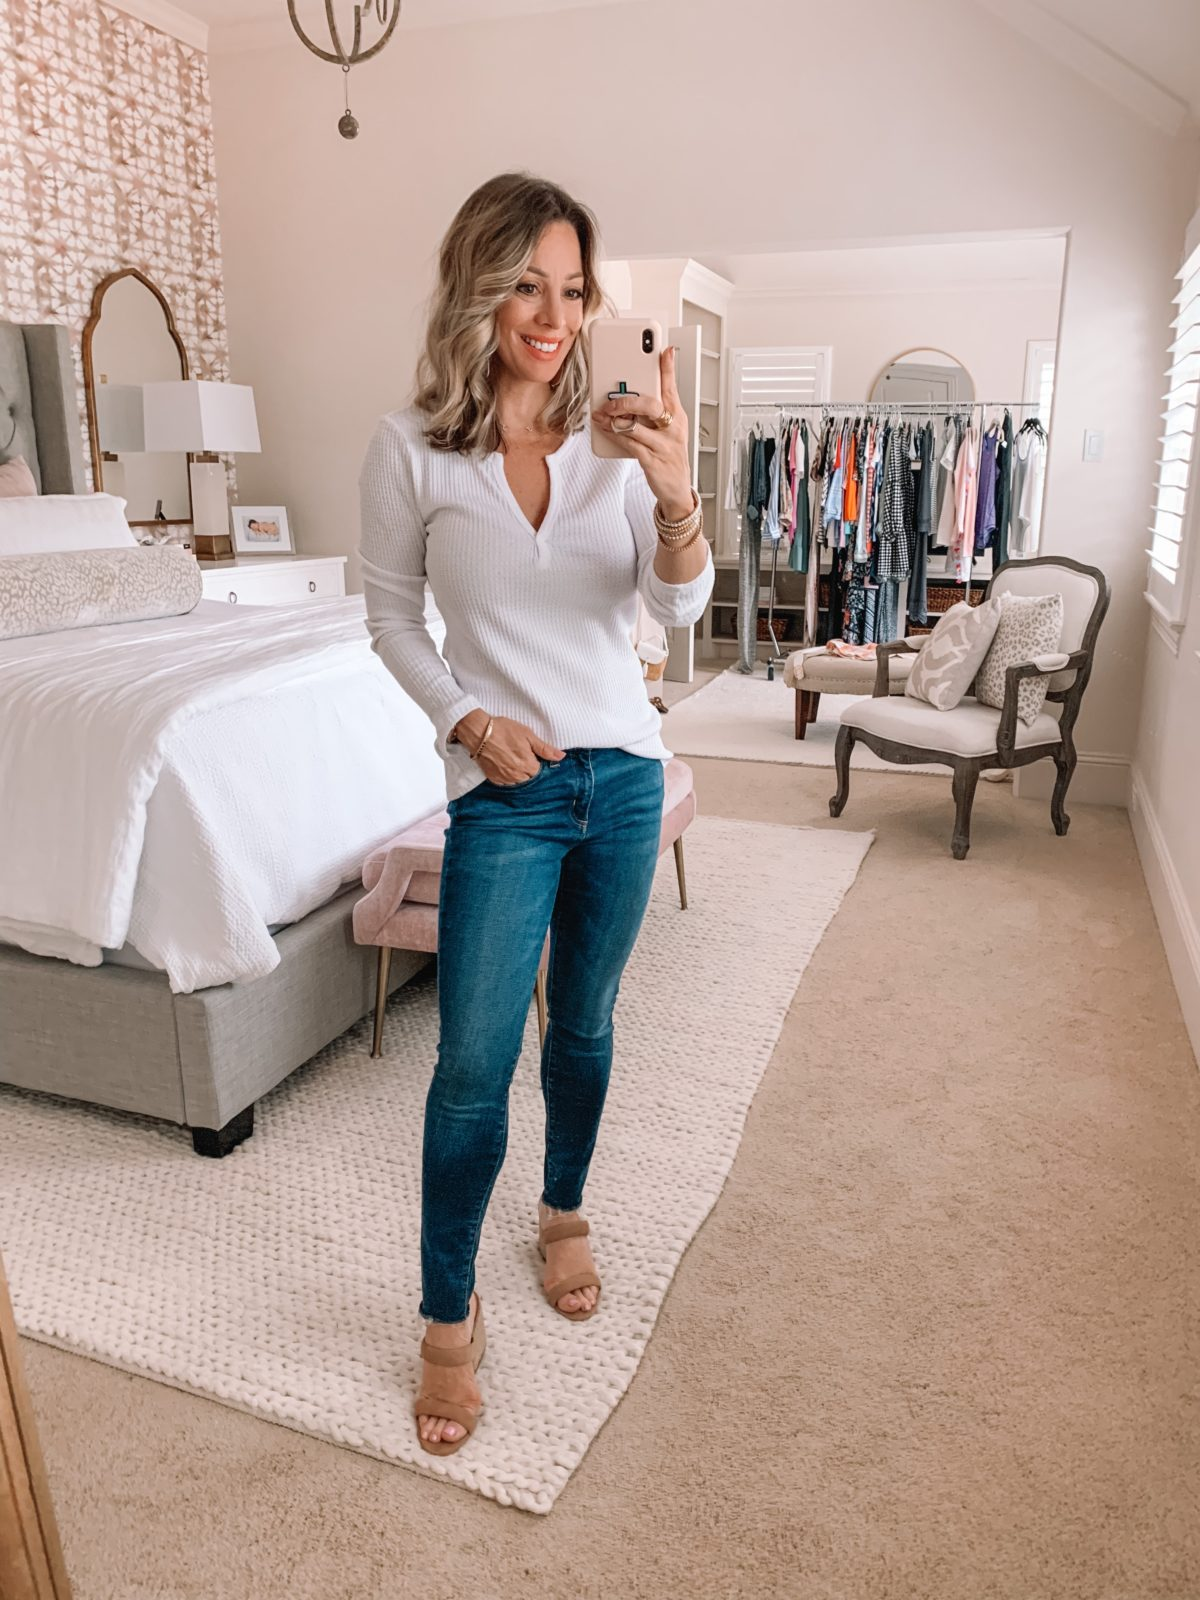 Amazon Fashion Finds, Waffle Knit Top, Skinny Jeans, Heels